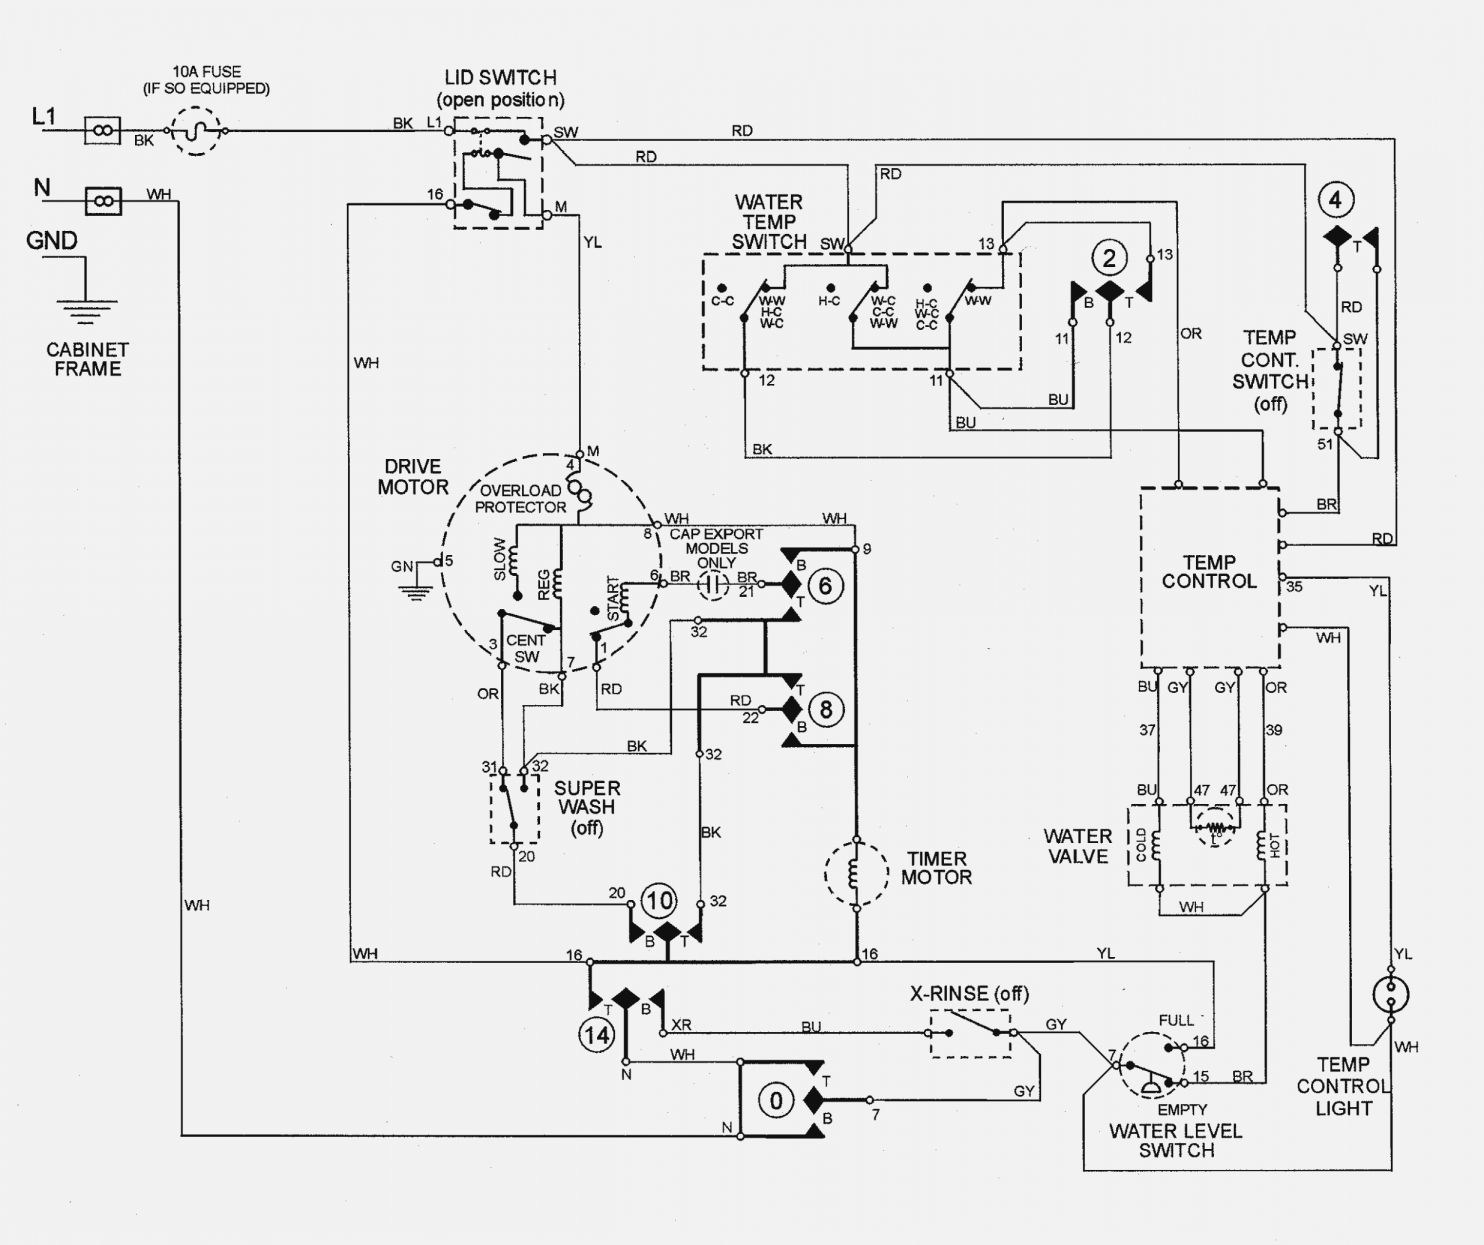 15 General Electric Motor Wiring Diagram Wiring Diagram In 2020